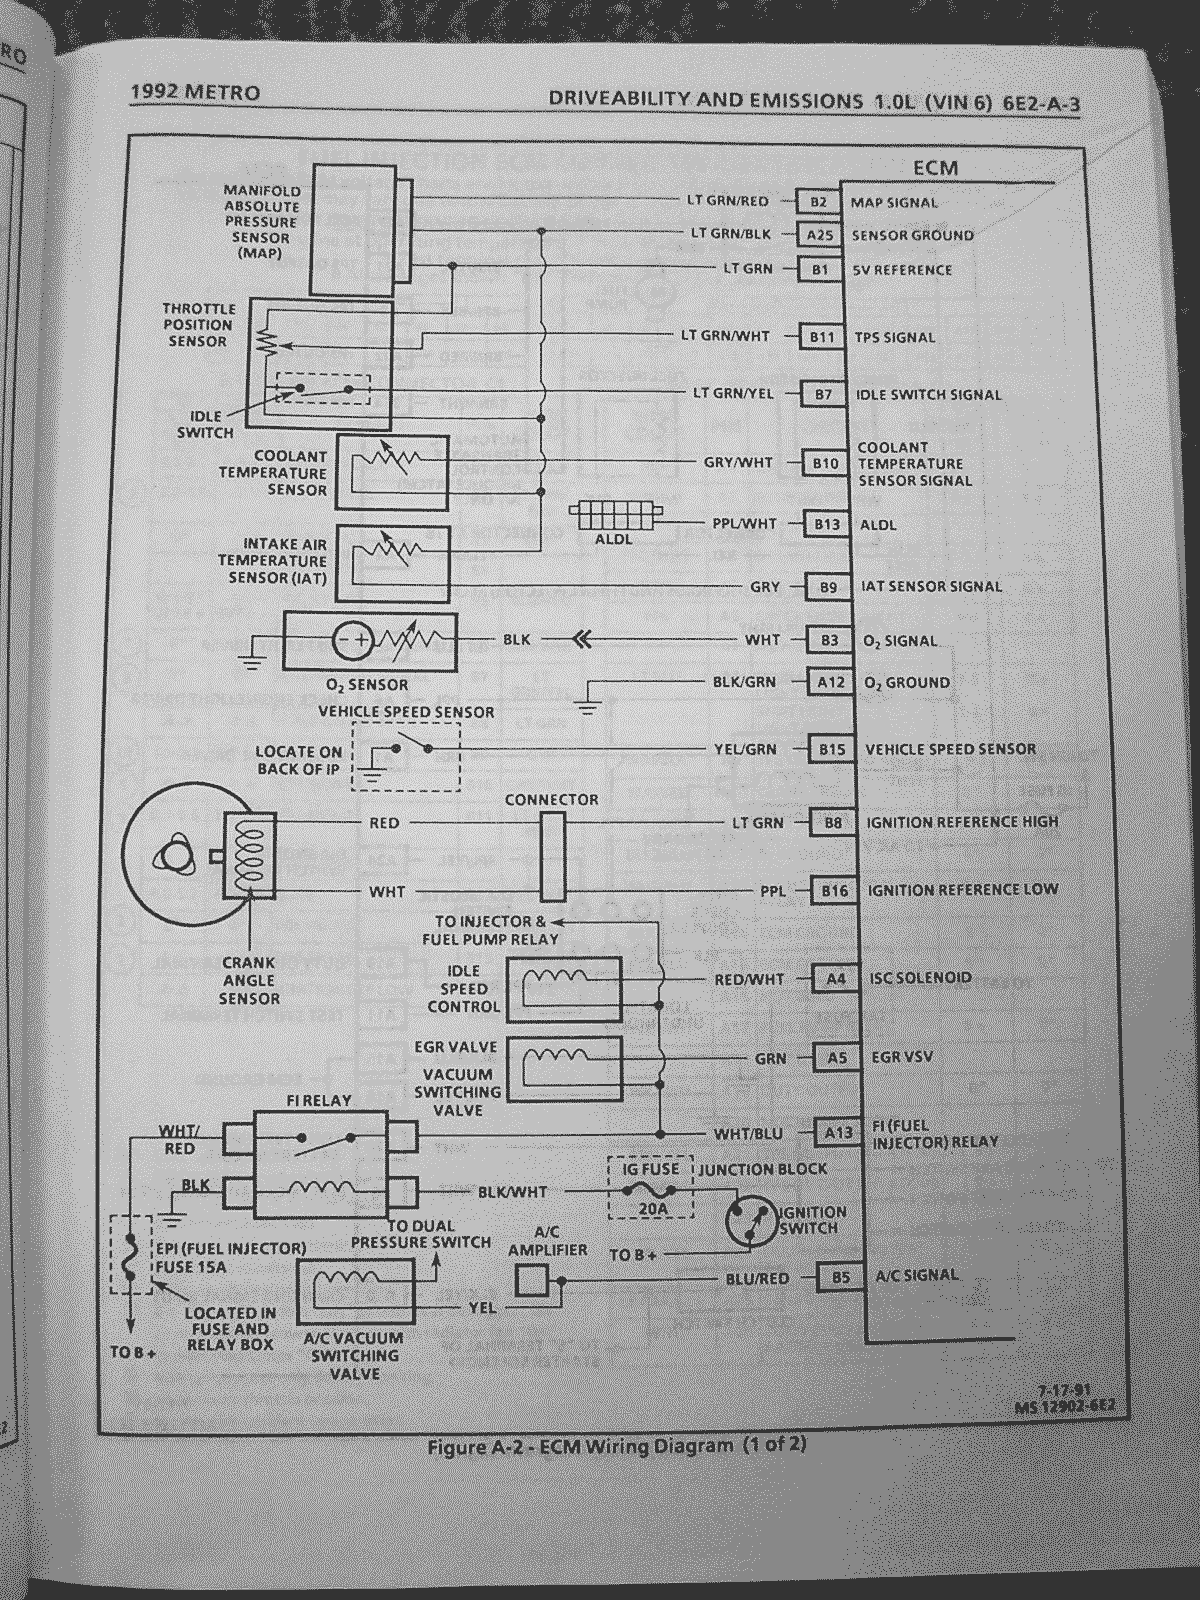 Geo Metro and Suzuki Swift Wiring Diagrams – MetroXFi.comMetro XFi